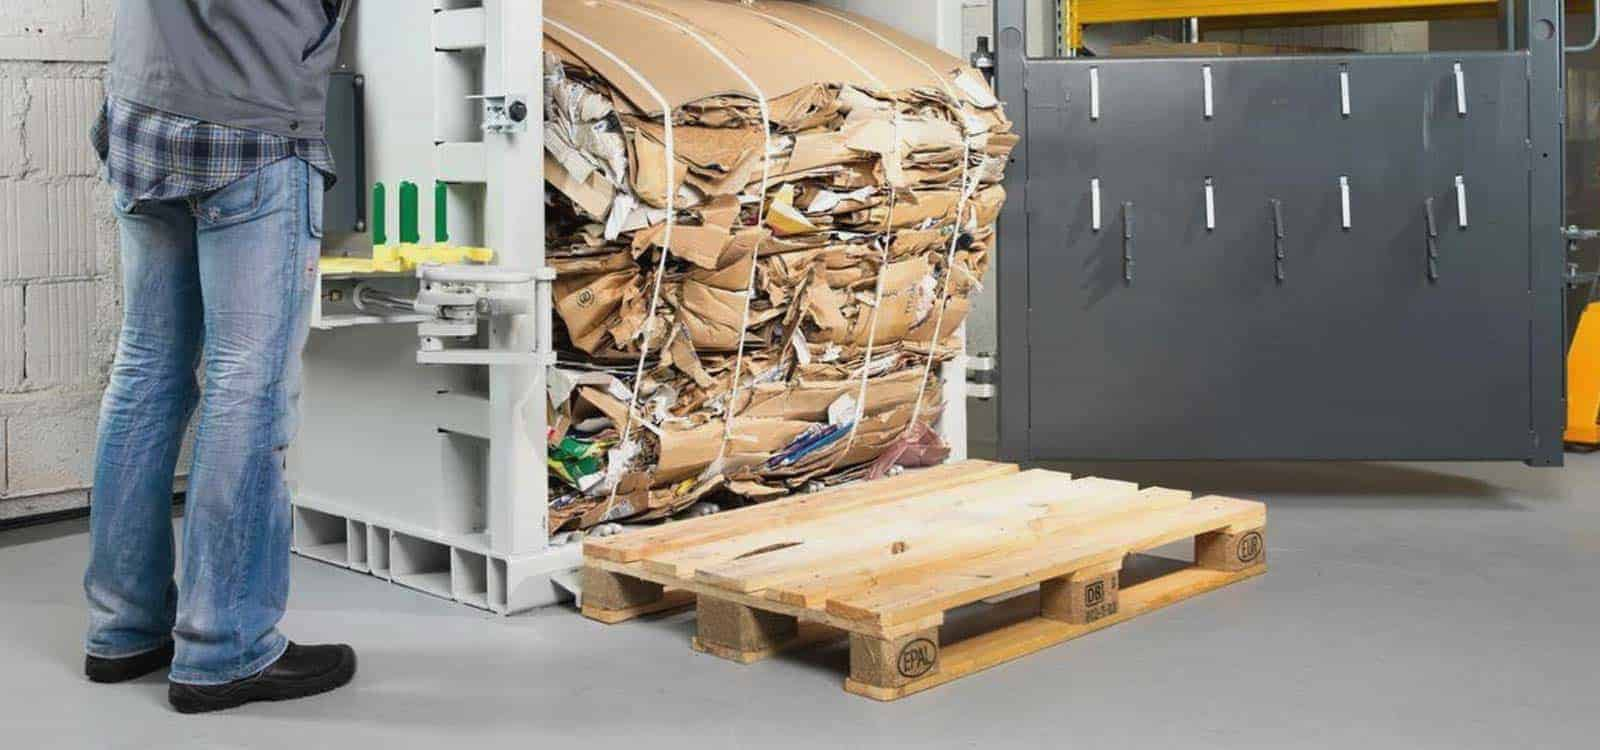 The Benefits Of A Cardboard Baler Service